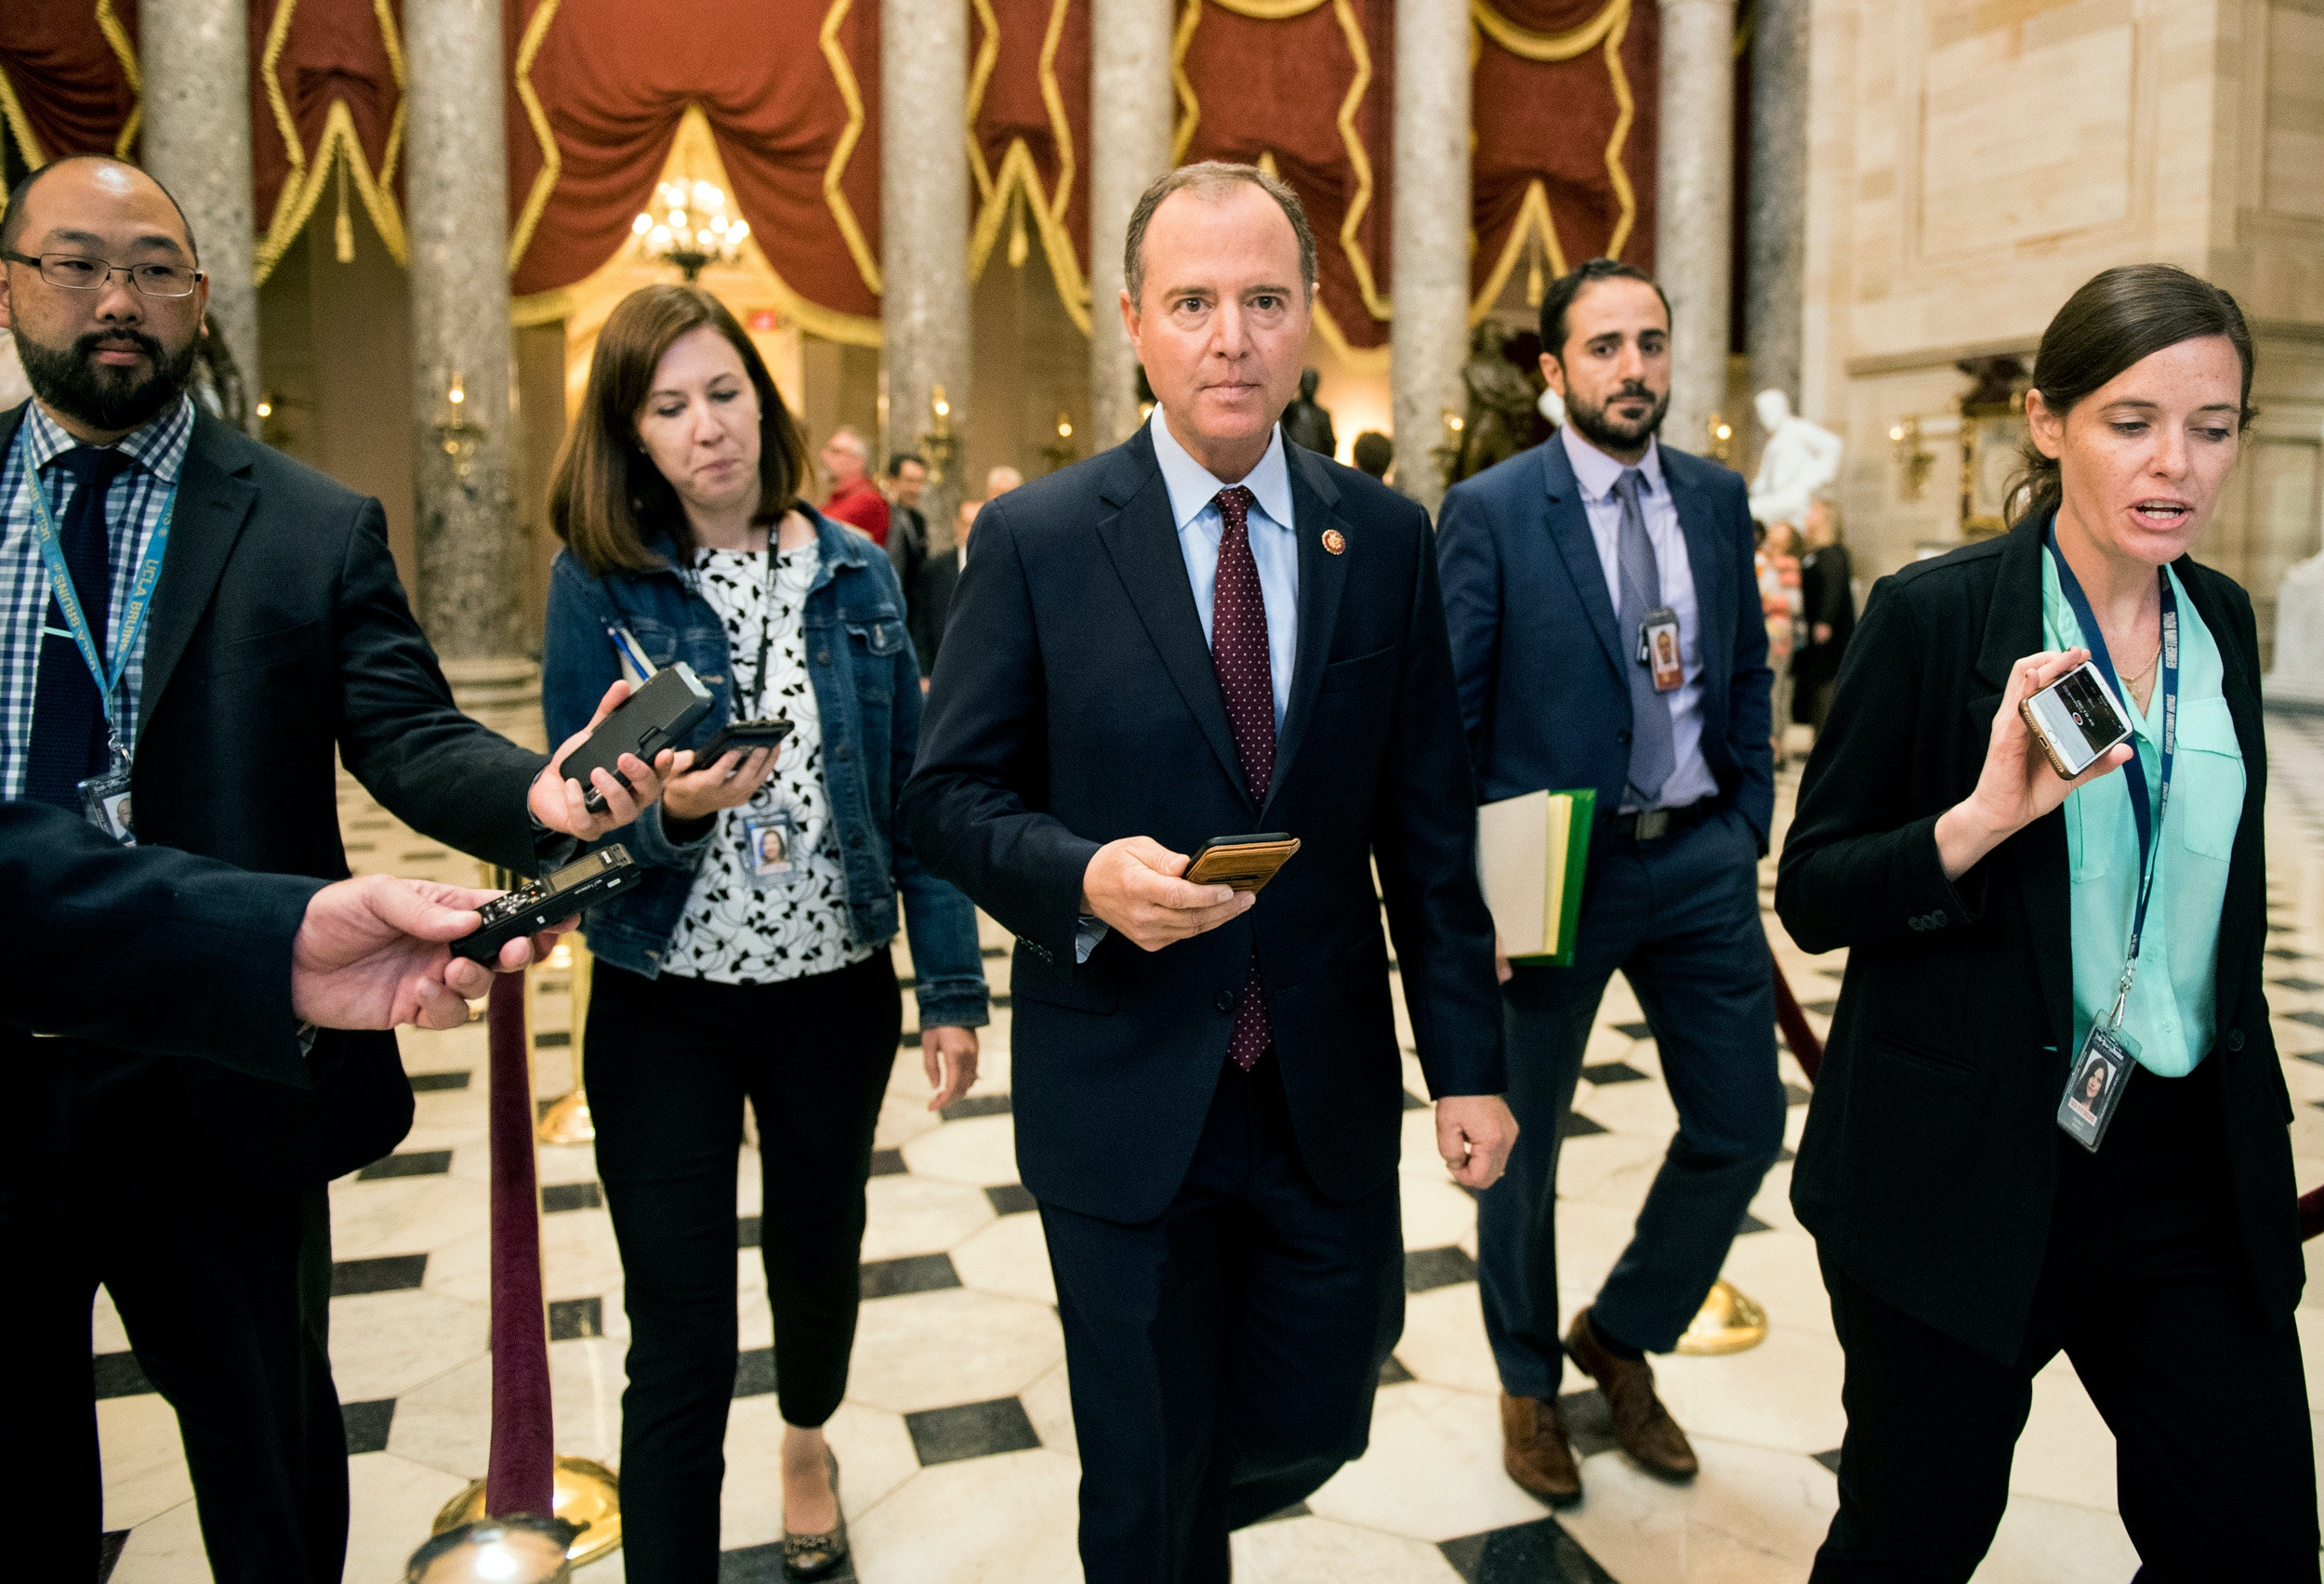 UNITED STATES - SEPTEMBER 24: House Intelligence Committee chairman Adam Schiff, D-Calif., arrives for a meeting of the House chairmen to discuss impeachment in Speaker Pelosi's office on Tuesday, Sept. 24, 2019. (Photo By Bill Clark/CQ Roll Call via AP Images)